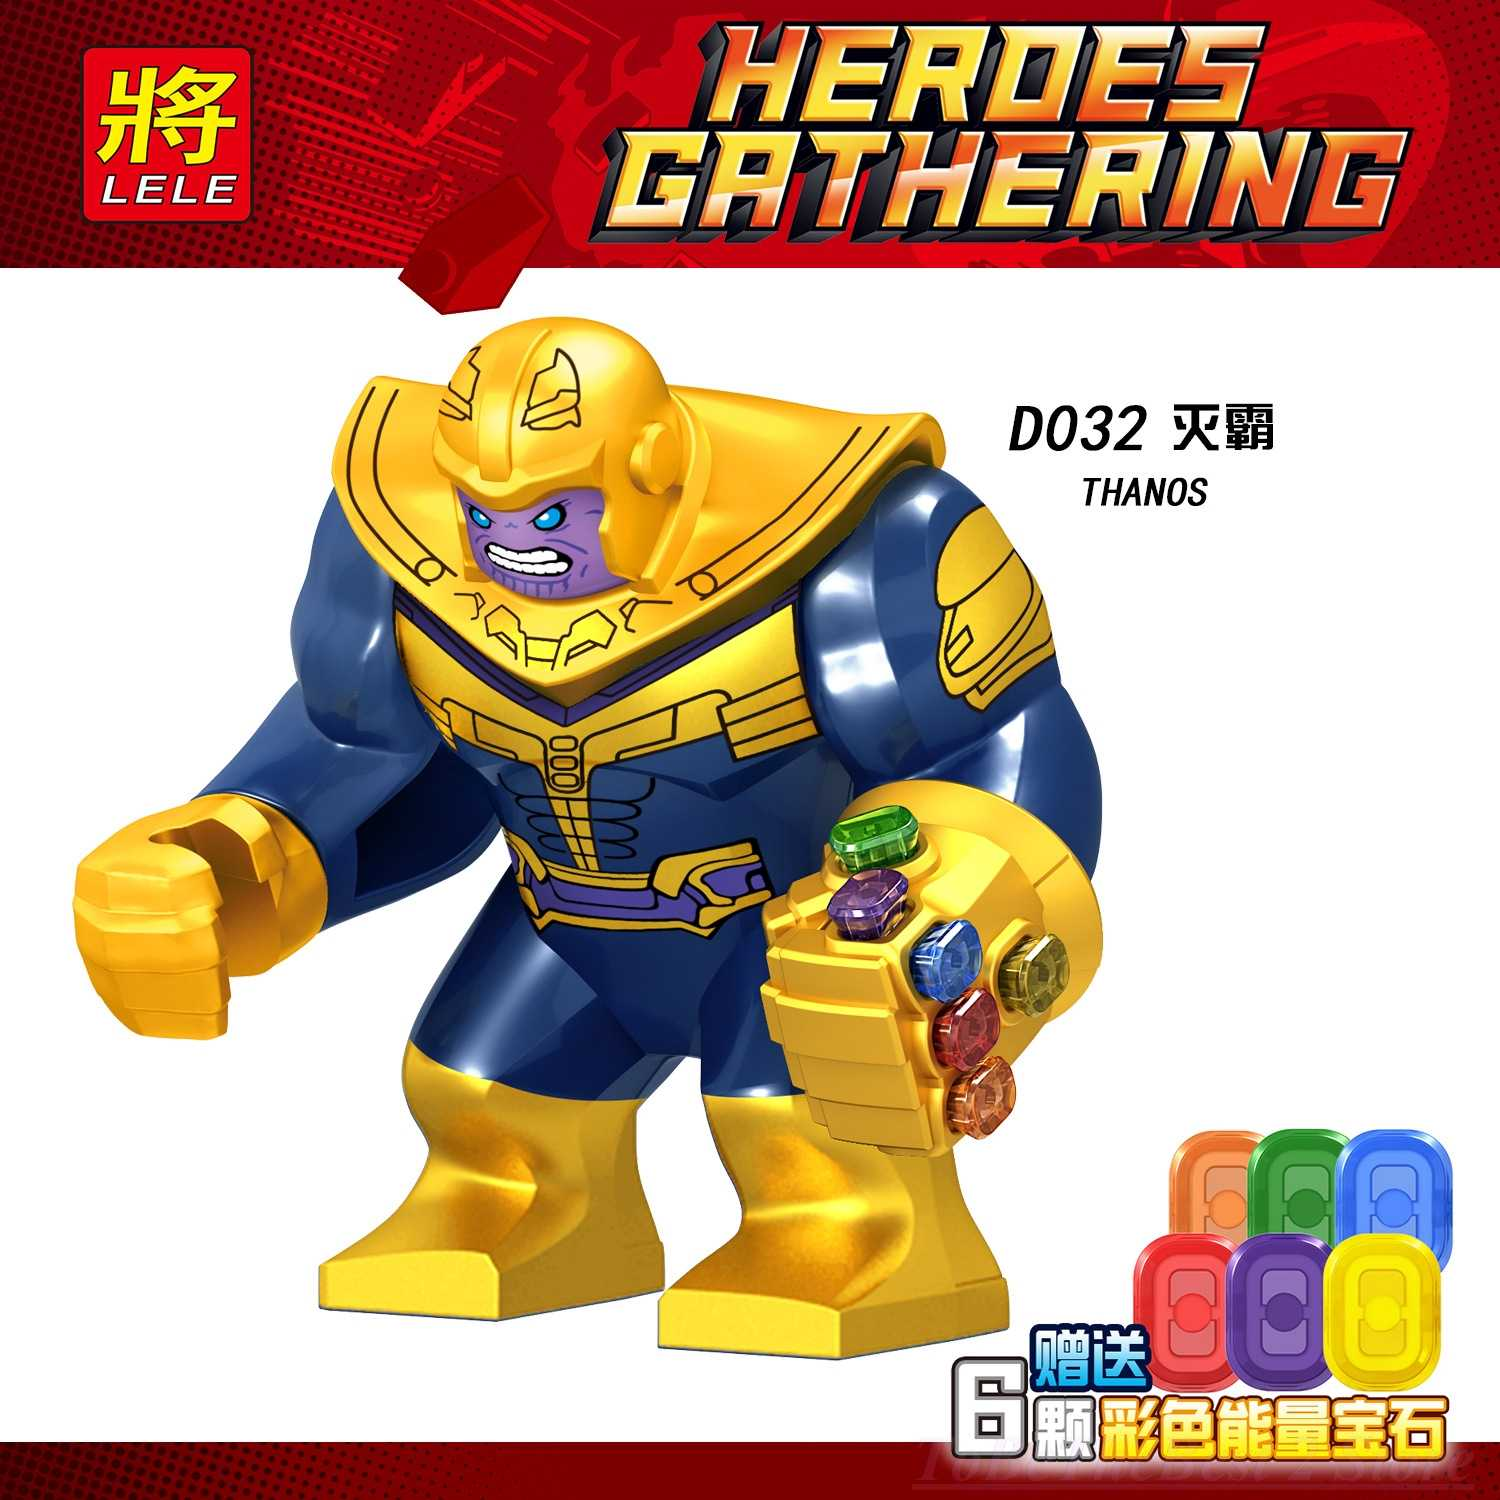 Legoing Hot Sale Marvel Super Heroes Thanos Figur Marvel Endgame Avengers 4 Blok Bangunan Kit Set Mainan Anak Hadiah Secara Terbuka